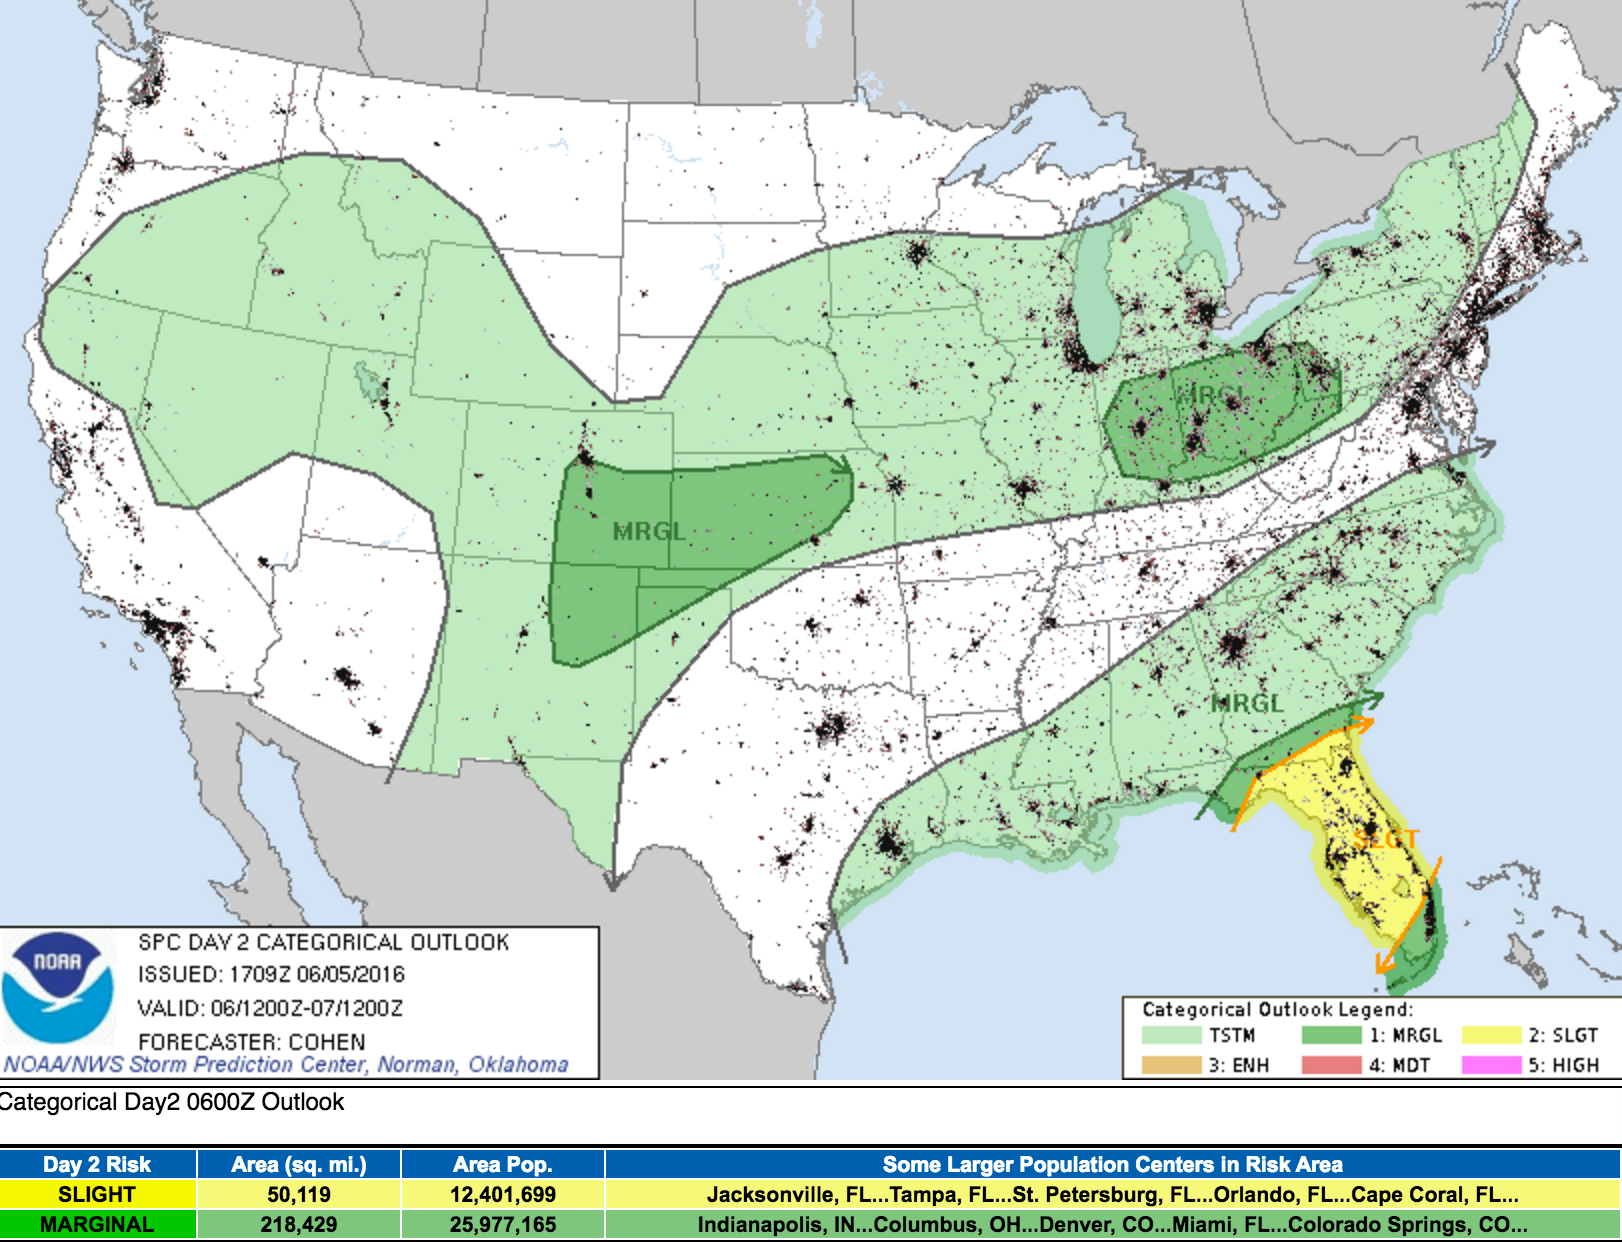 Monday severe weather outlook via the SPC